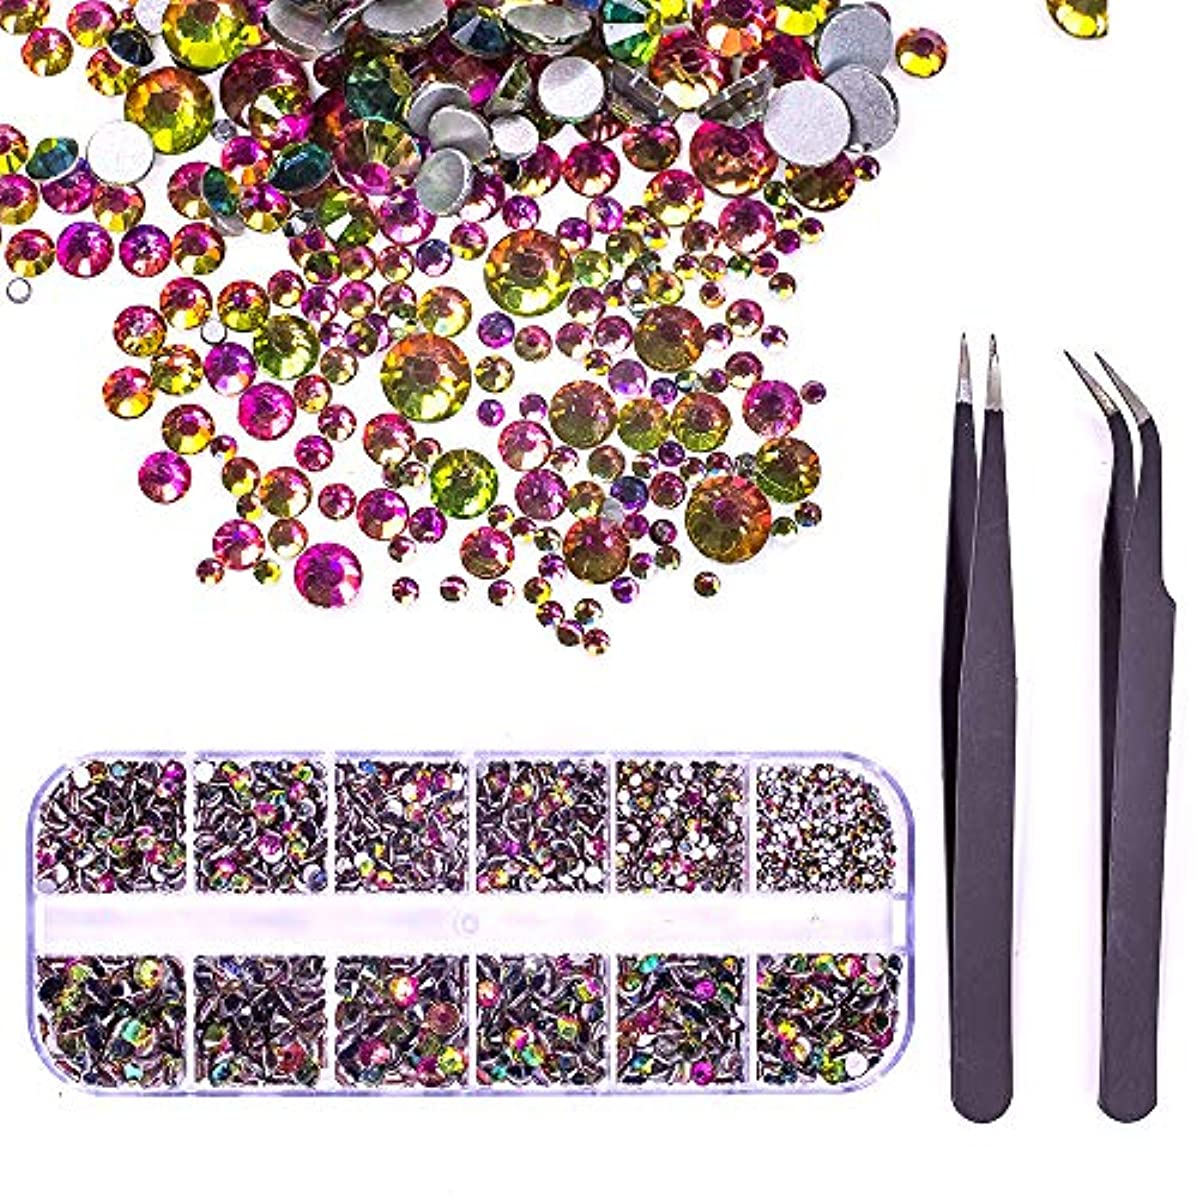 MIOBLET 1728pcs Crystals Flame Nail Art Rhinestones Round Beads Flatback Glass Charms Gems Stones and 2 Pieces Tweezers with Storage Organizer Box, SS3 6 10 12 16 20, 288 Pieces Each Size